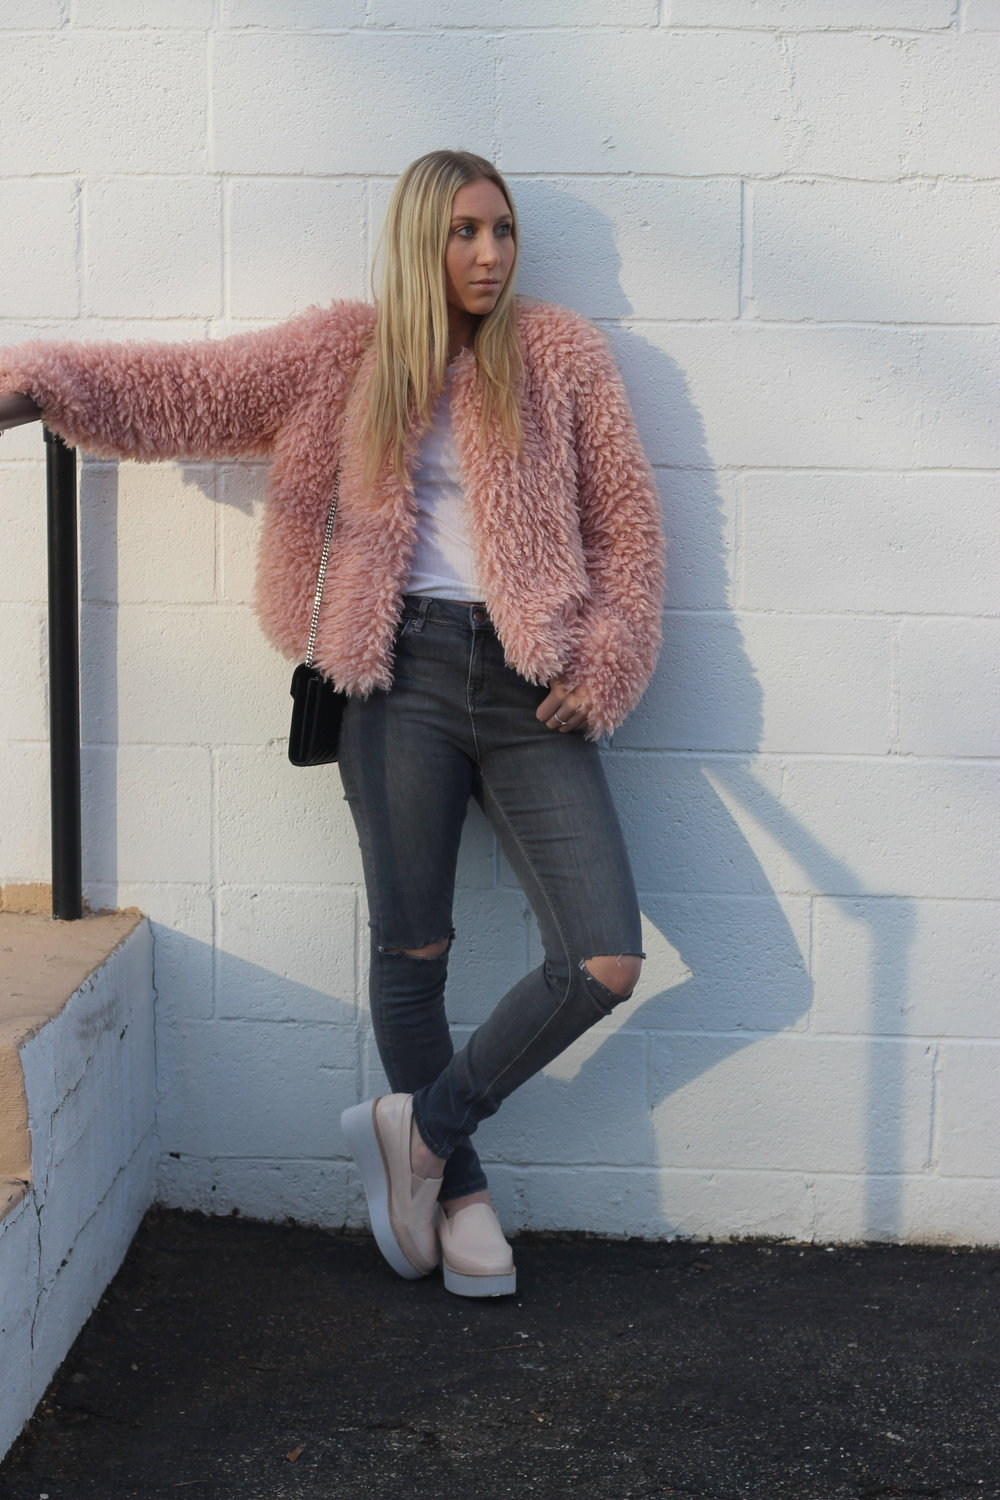 Carly of Au Courant Life in pink monochrome outfit